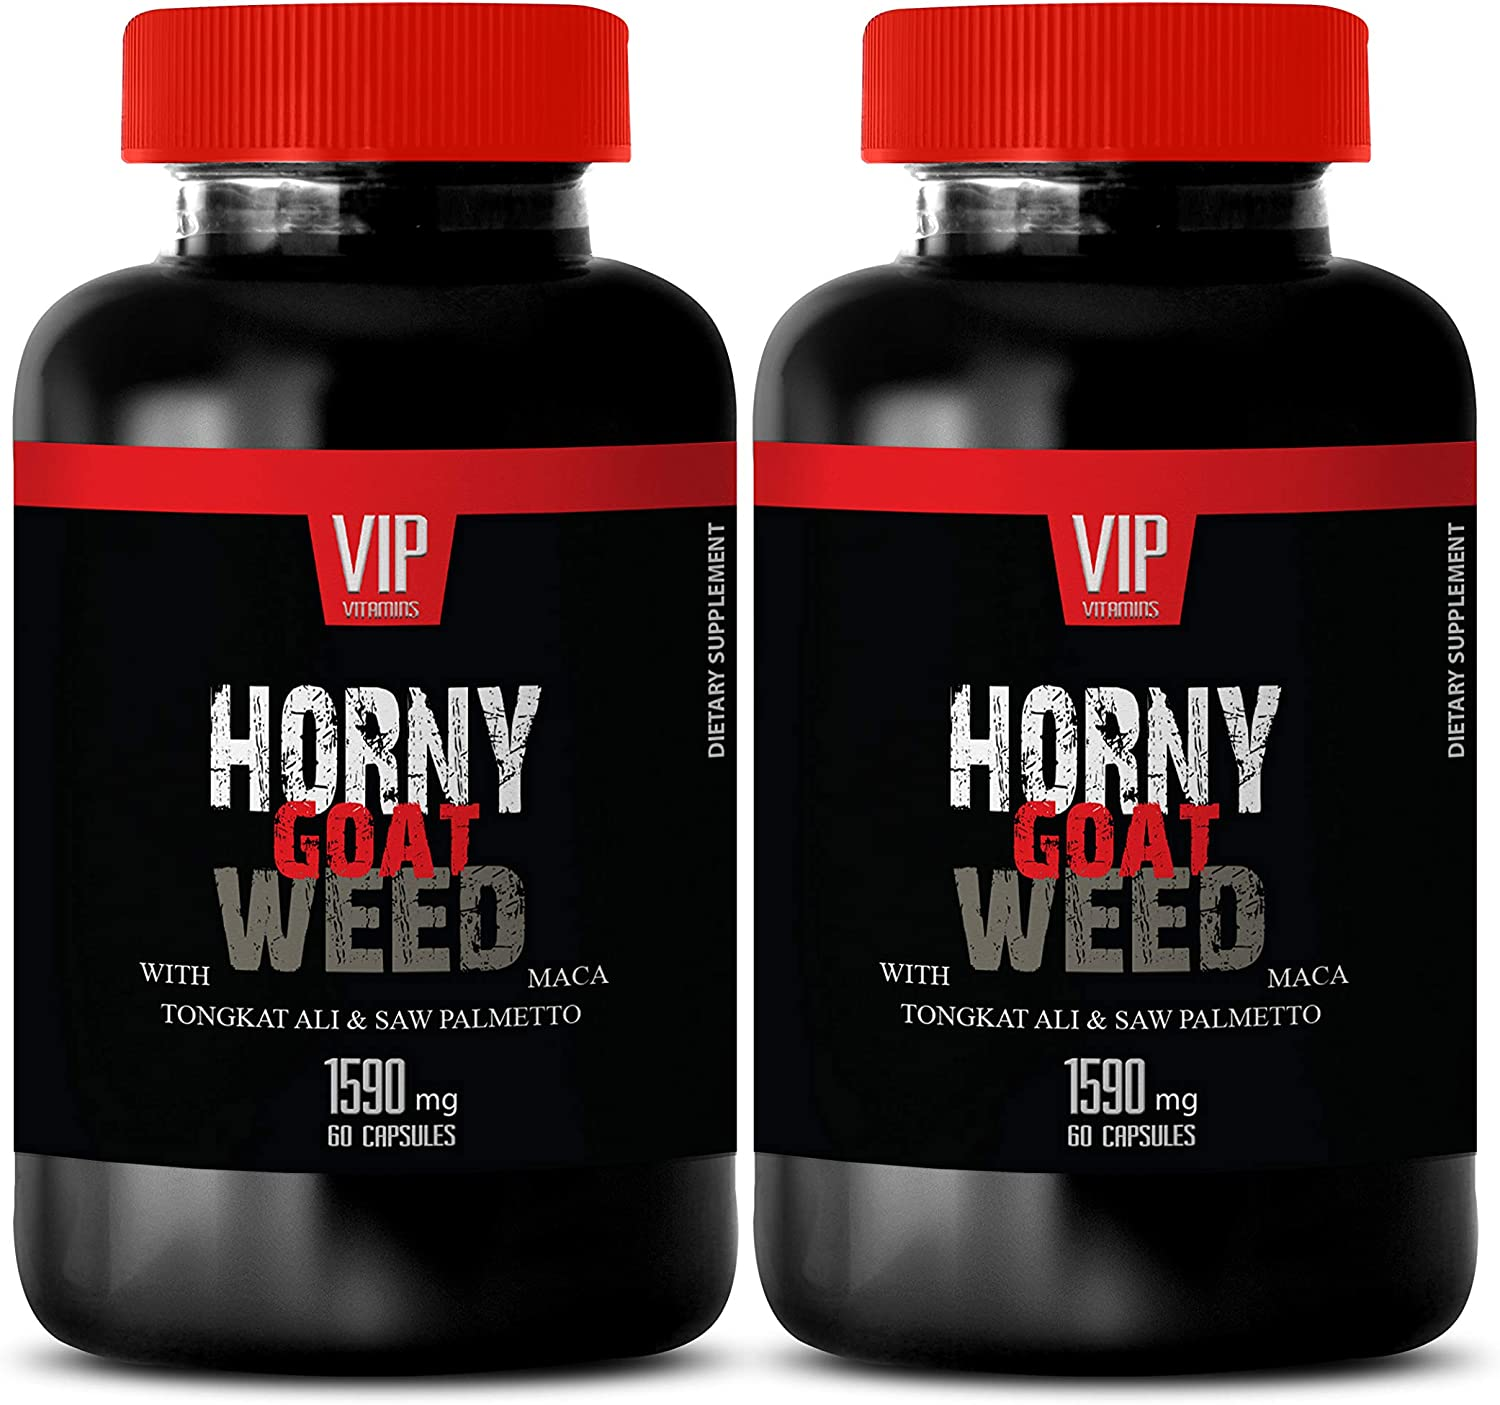 Special price for a limited time Female Enhancing Pills - Horny Comple Natural 1000MG Goat Cheap mail order specialty store Weed